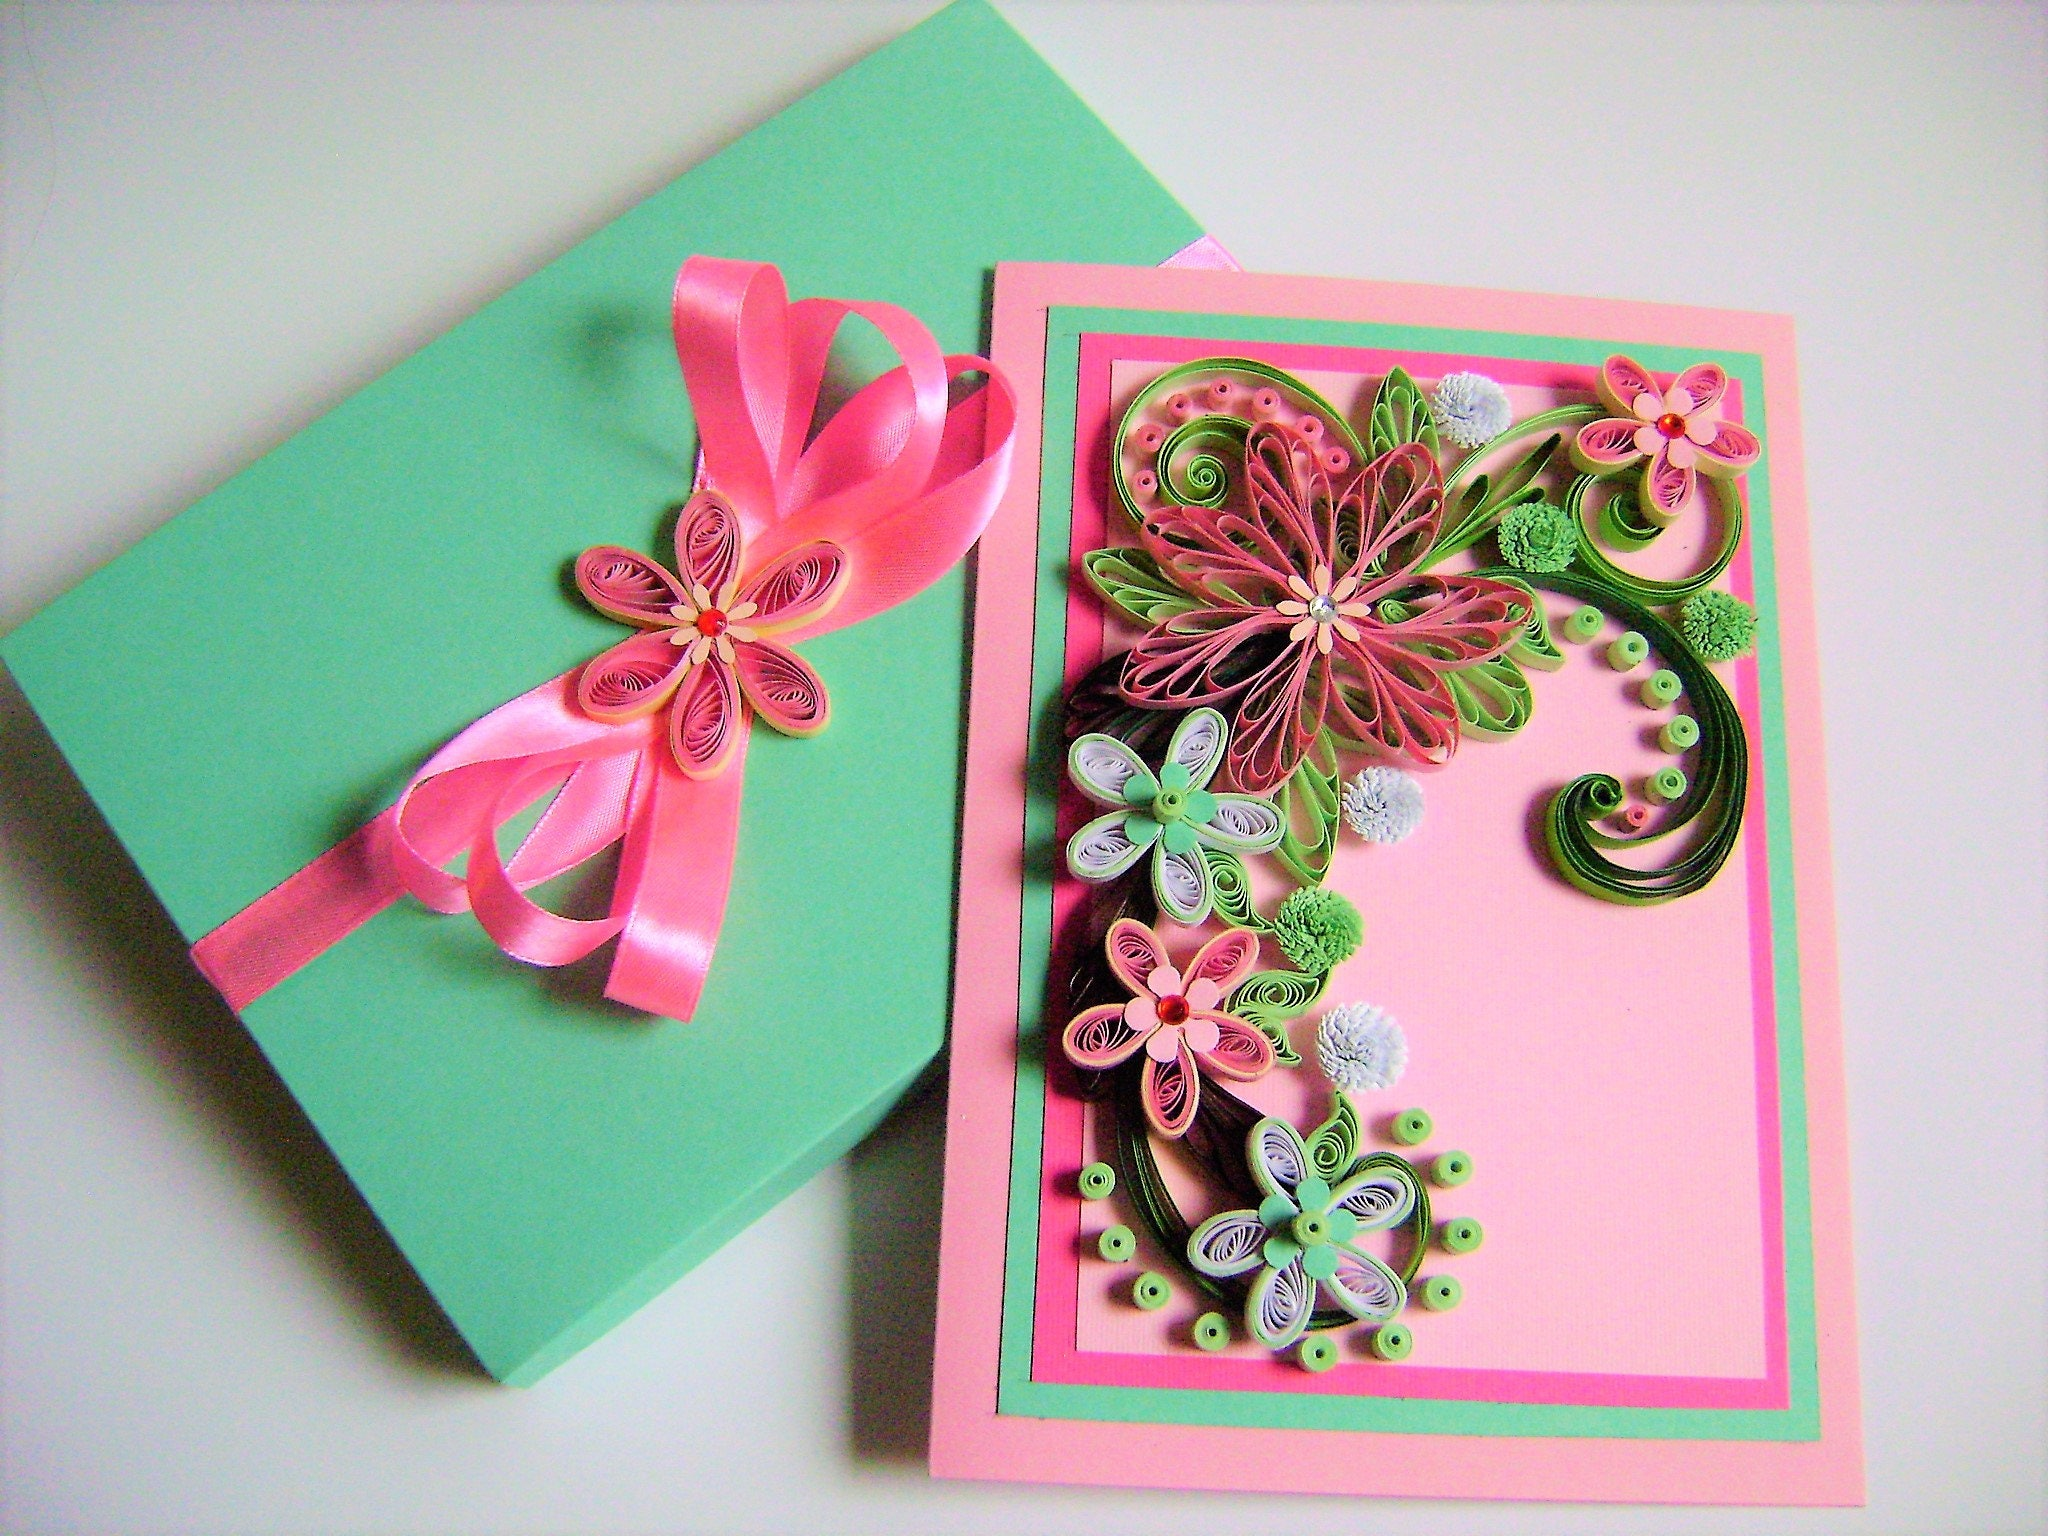 Flower wedding cardwedding invitation cardquilling greeting card flower wedding cardwedding invitation cardquilling greeting cardanniversary cardquilled stopboris